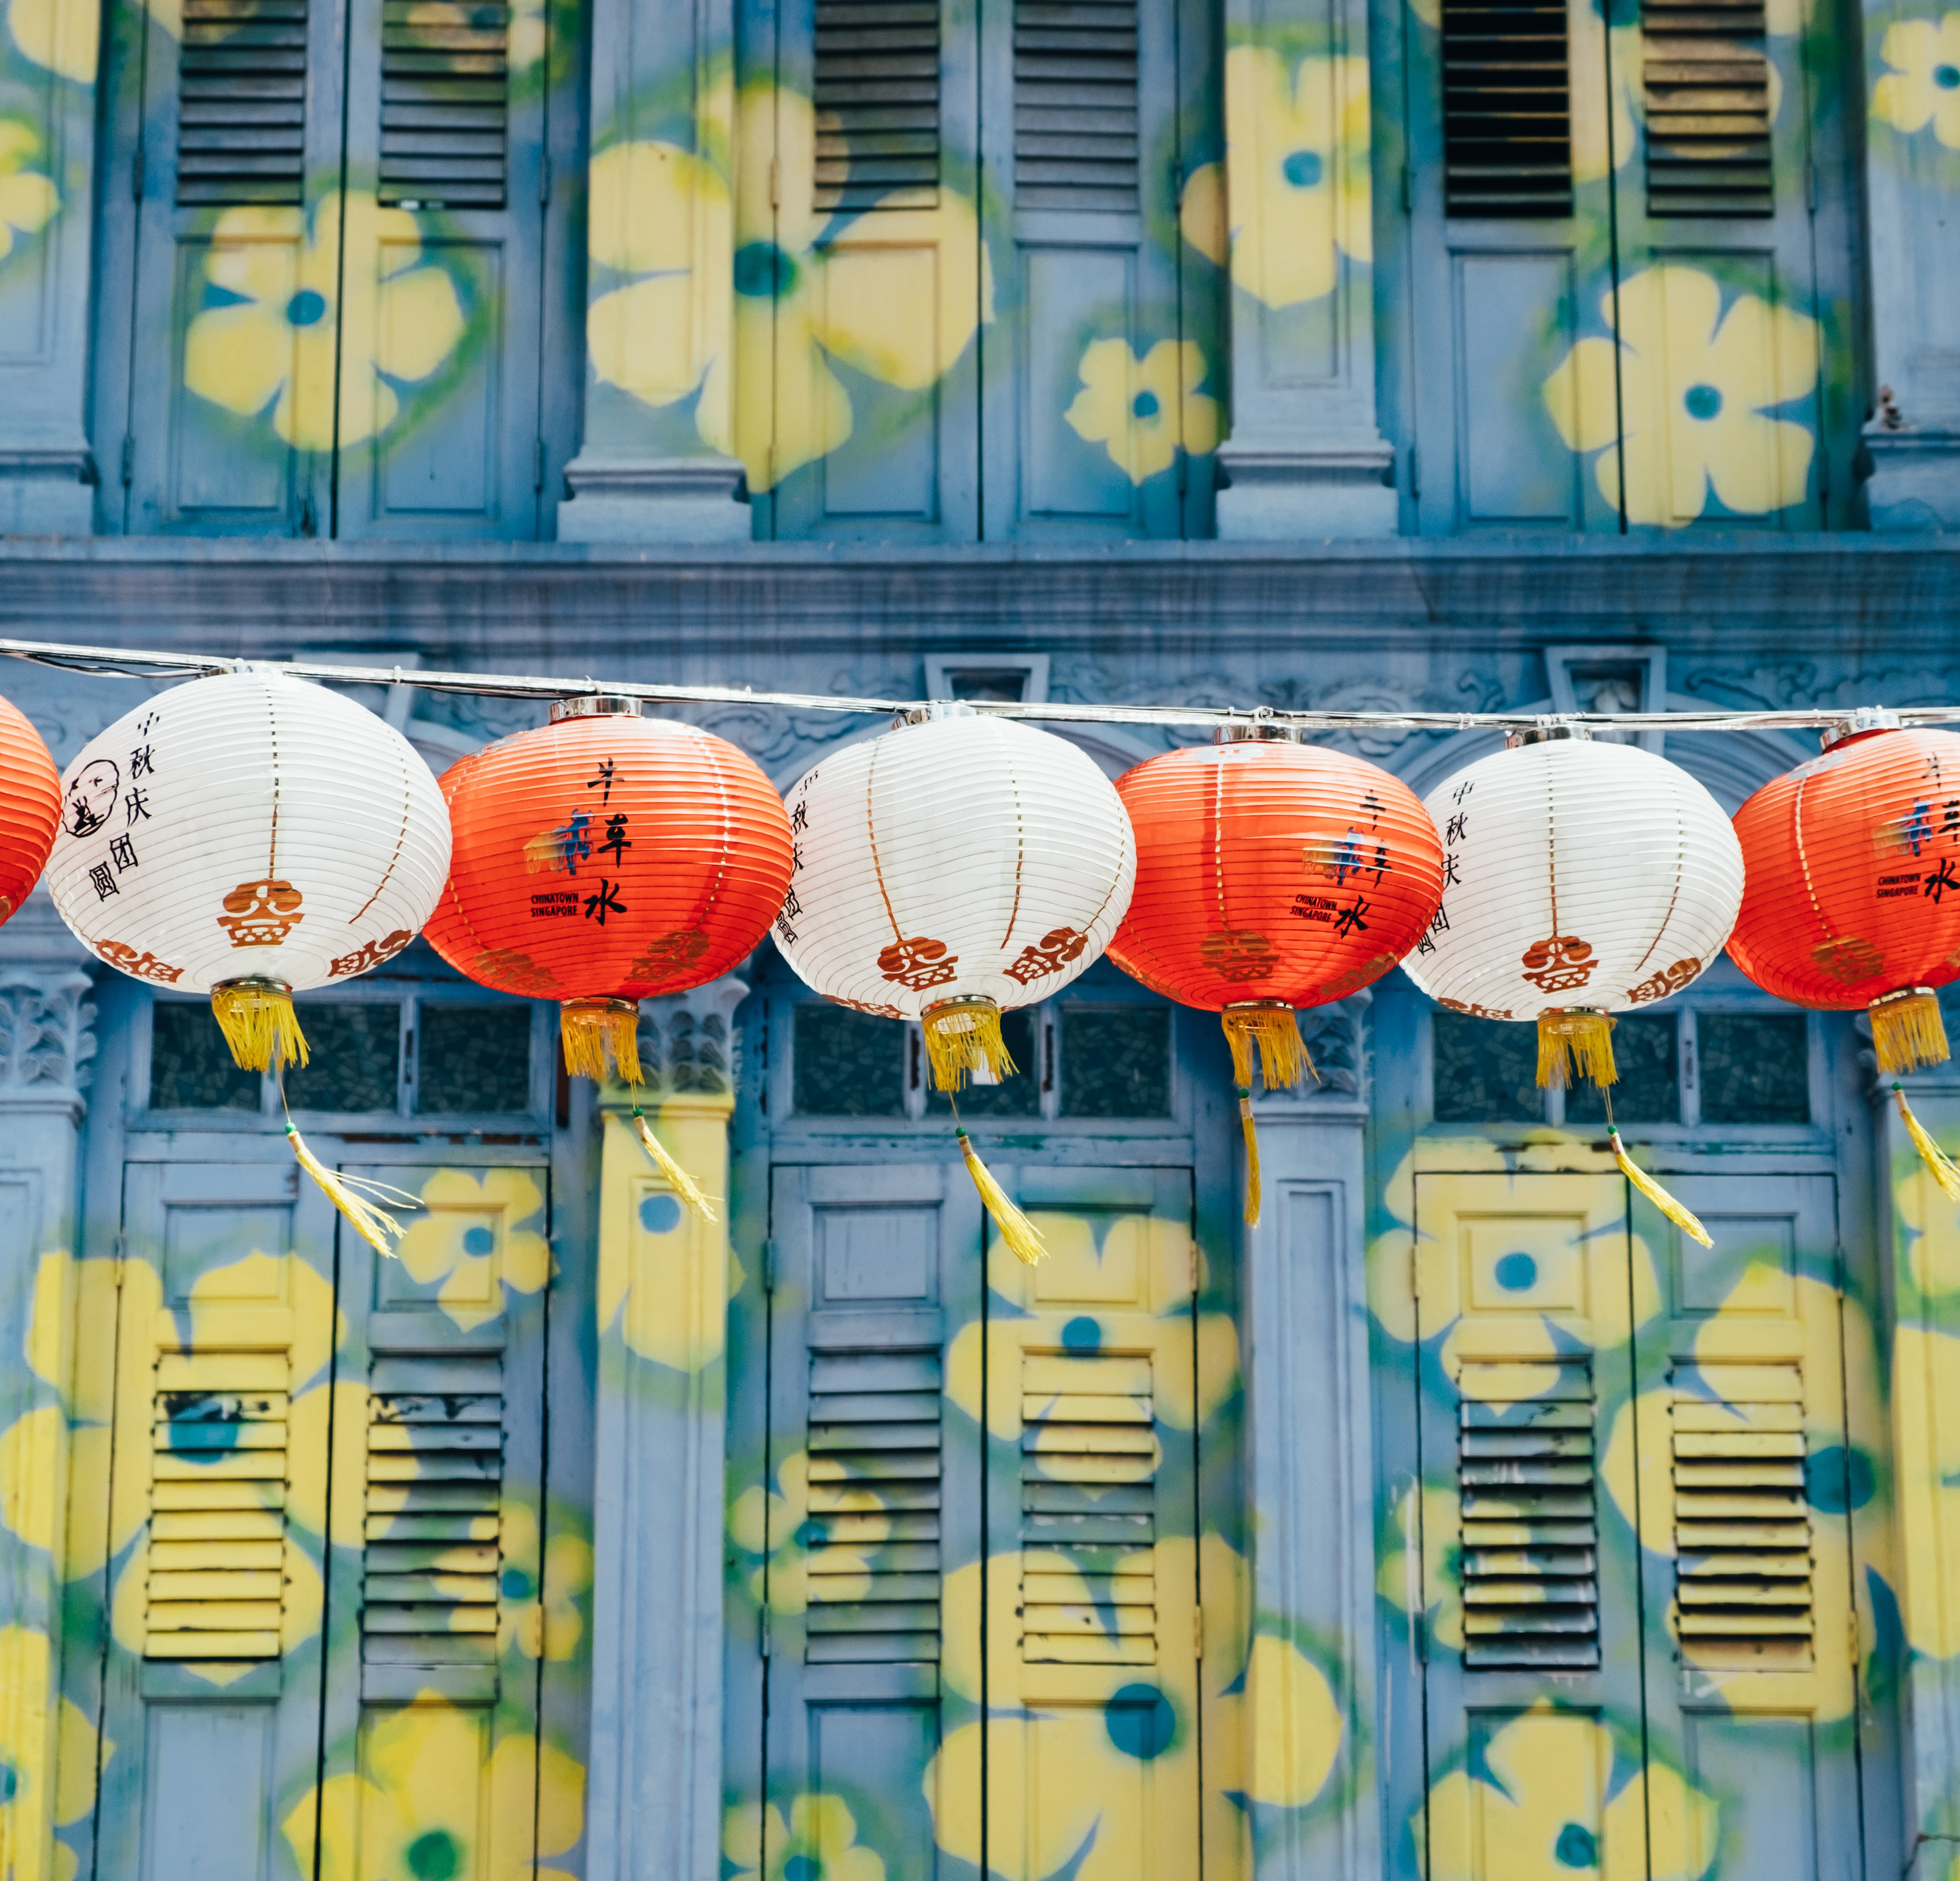 White and red paper lanterns by a wall painted a floral pattern